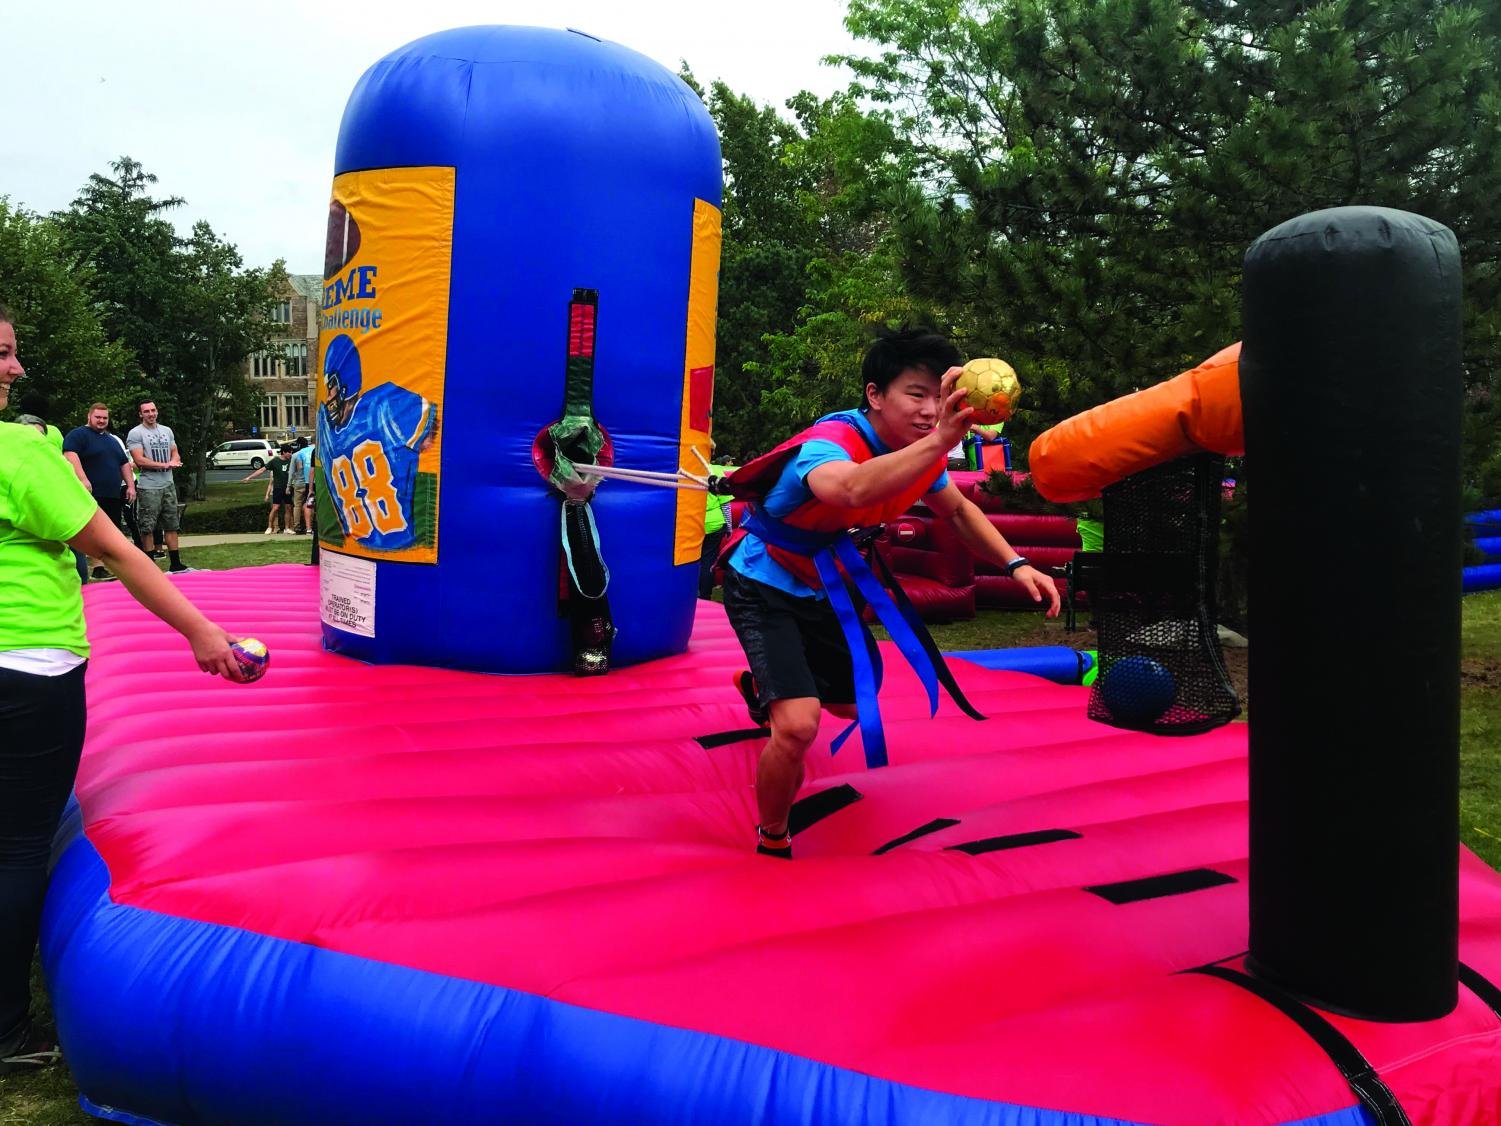 Hurst day was a roaring success, with a scavenger hunt, inflatable games and food.